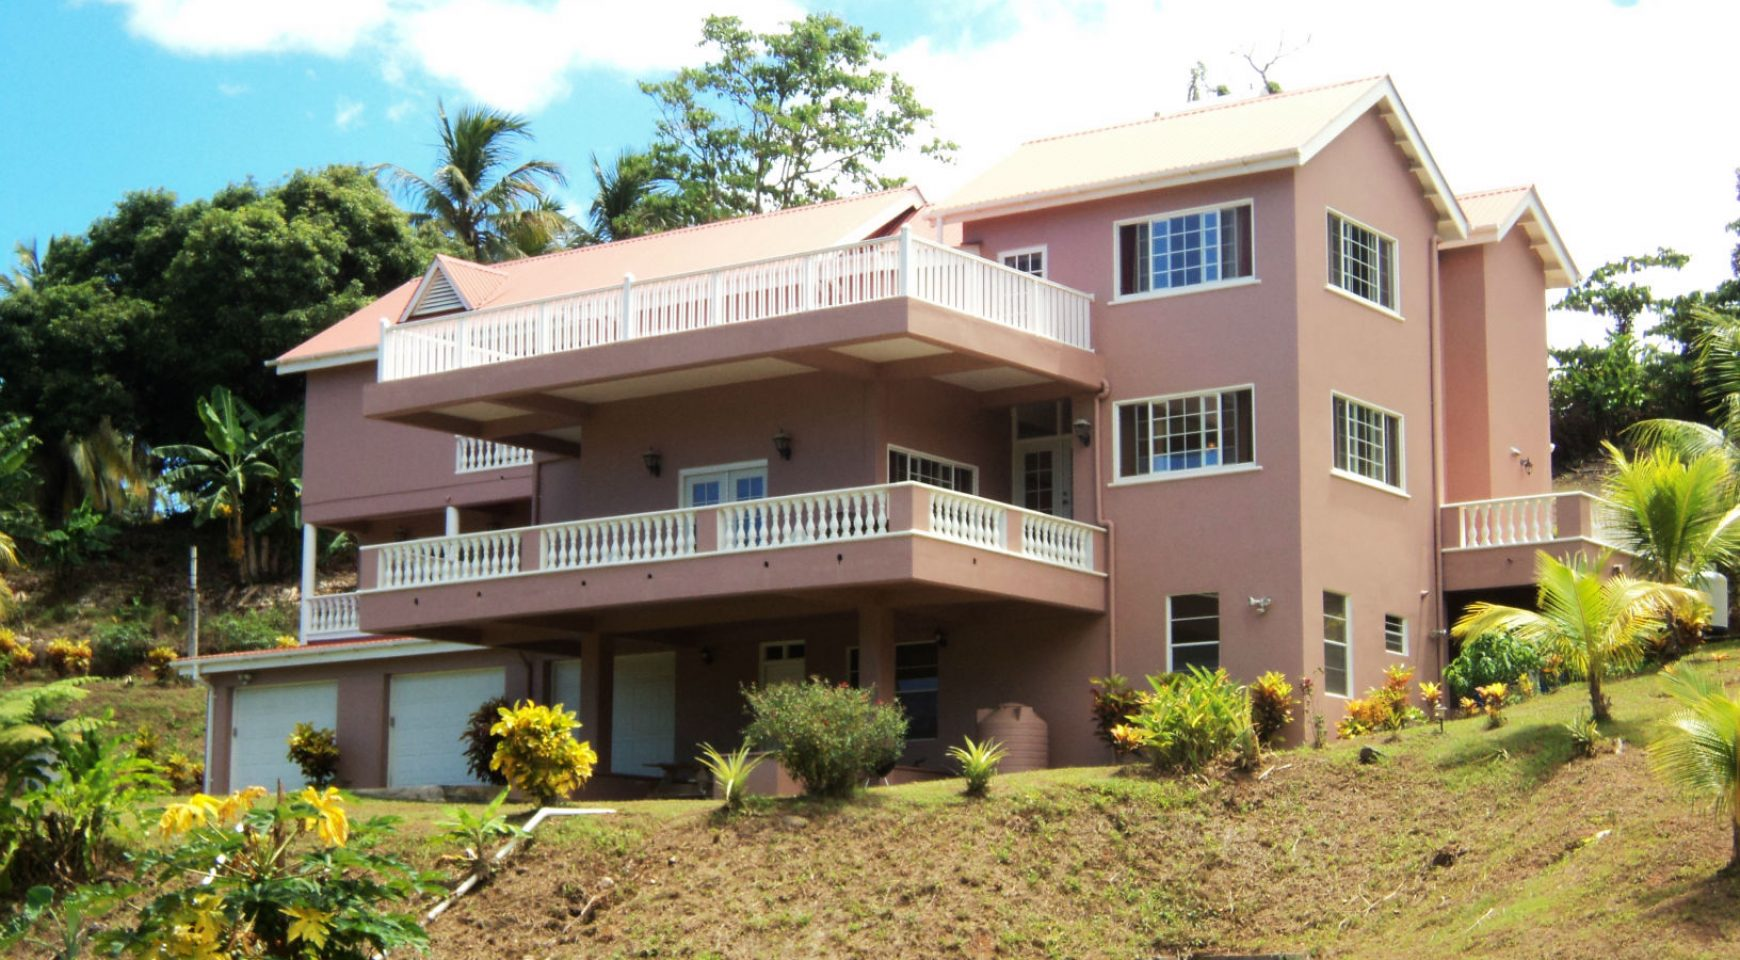 4 Bedroom, 4 Bathroom High End Home For Sale In Woodford Hill Woodford  Hill, Saint Andrew